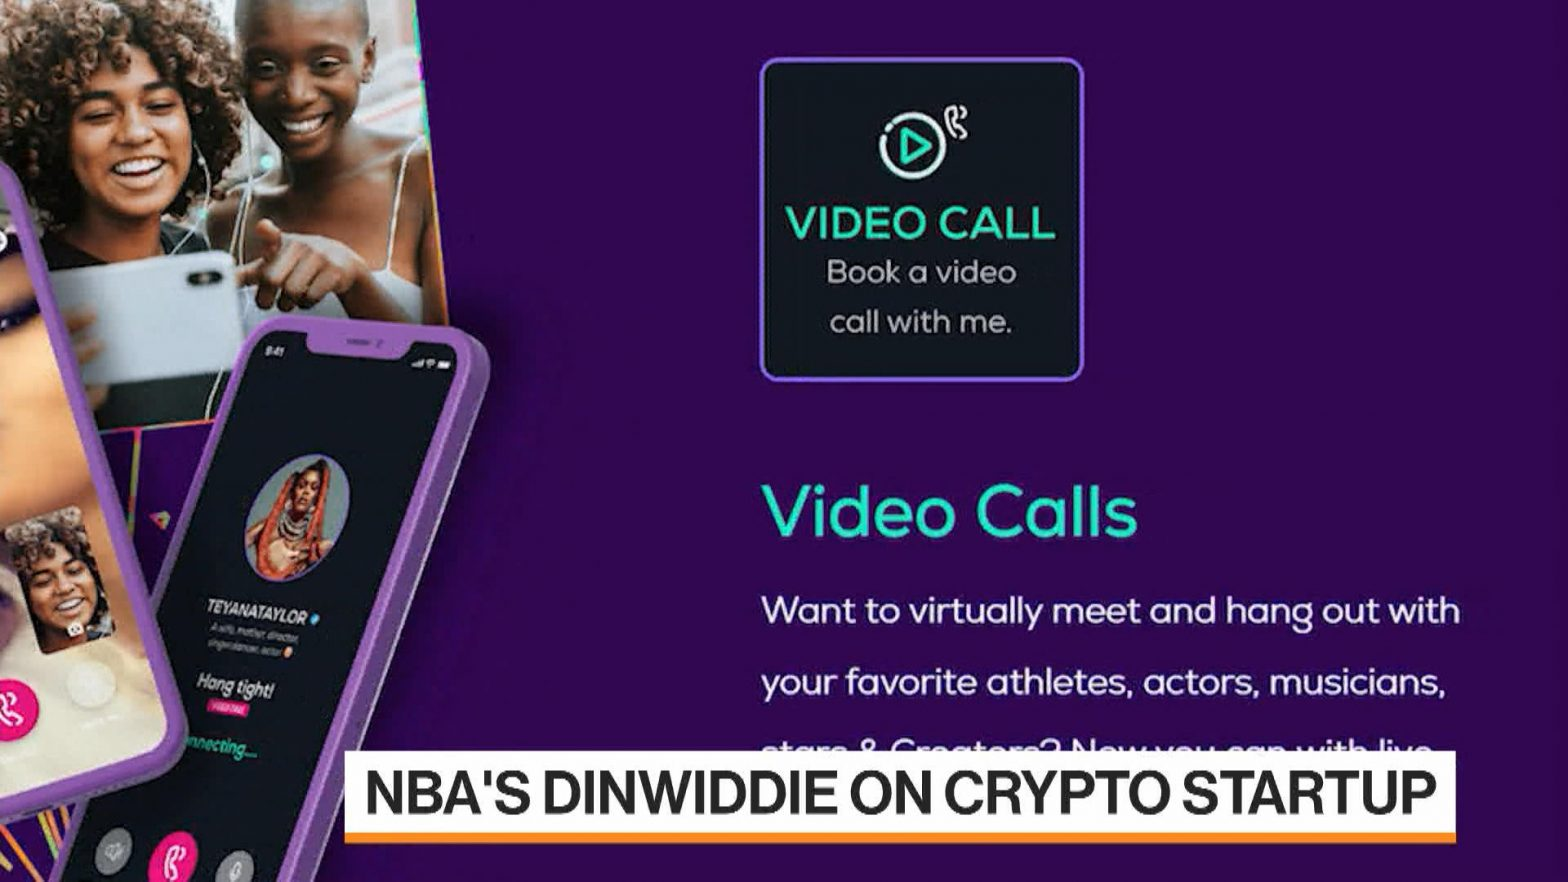 crypto-tech-can-bring-fans-closer-to-athletes,-celebrities:-spencer-dinwiddie